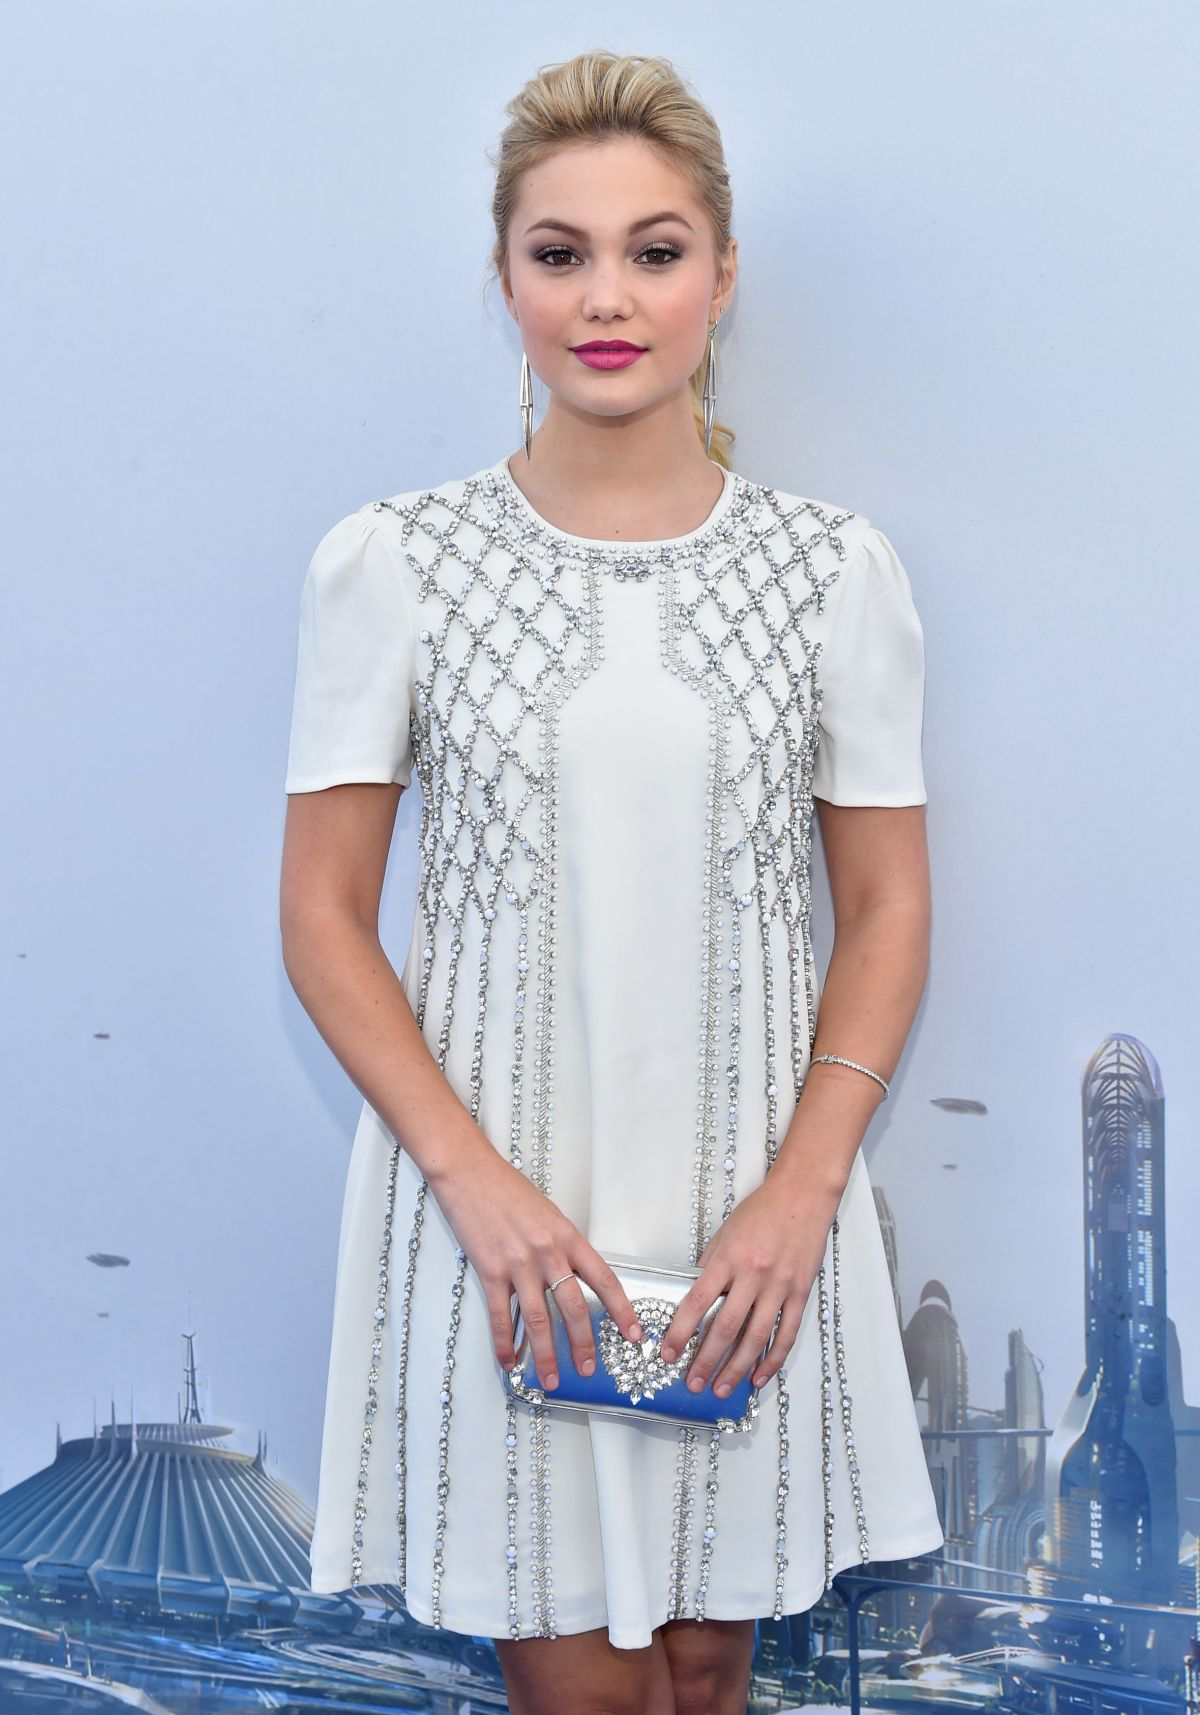 Fotos De Olivia Holt olivia holt at tomorrowland premiere in anaheim – hawtcelebs